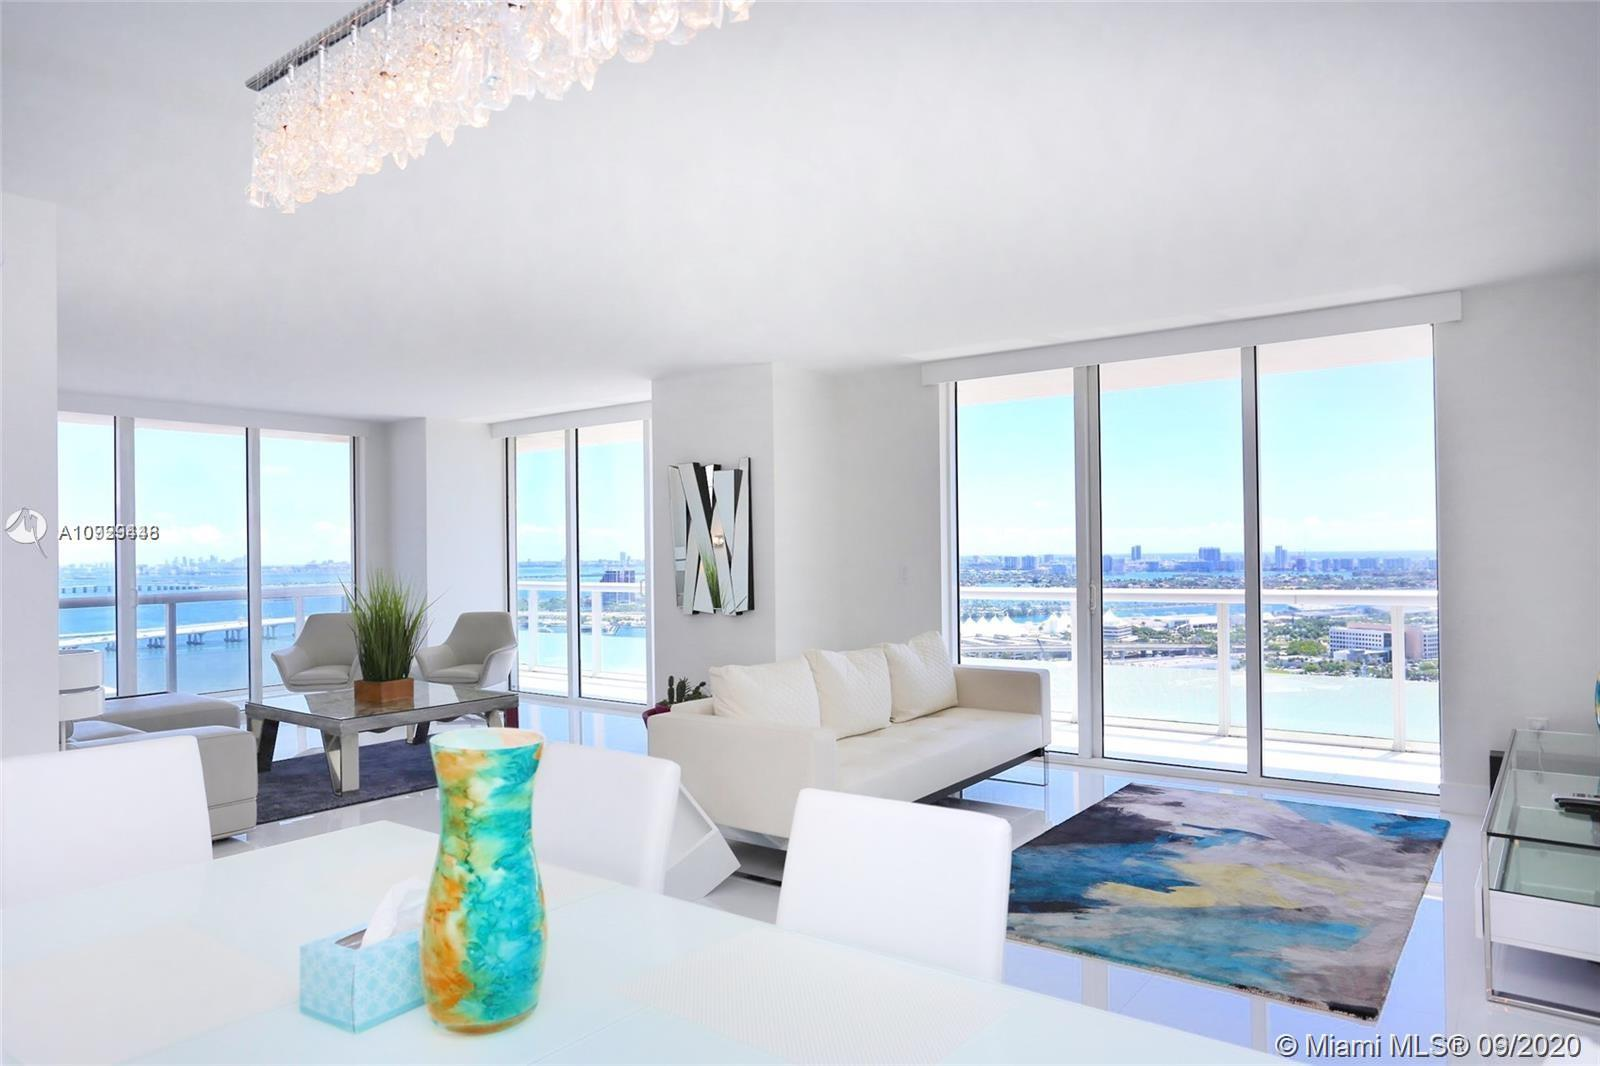 Enjoy the direct ocean and open bay views from this completely remodeled downtown unit. Walking distance to Arena, Bayside shops, Brickell City Center. 